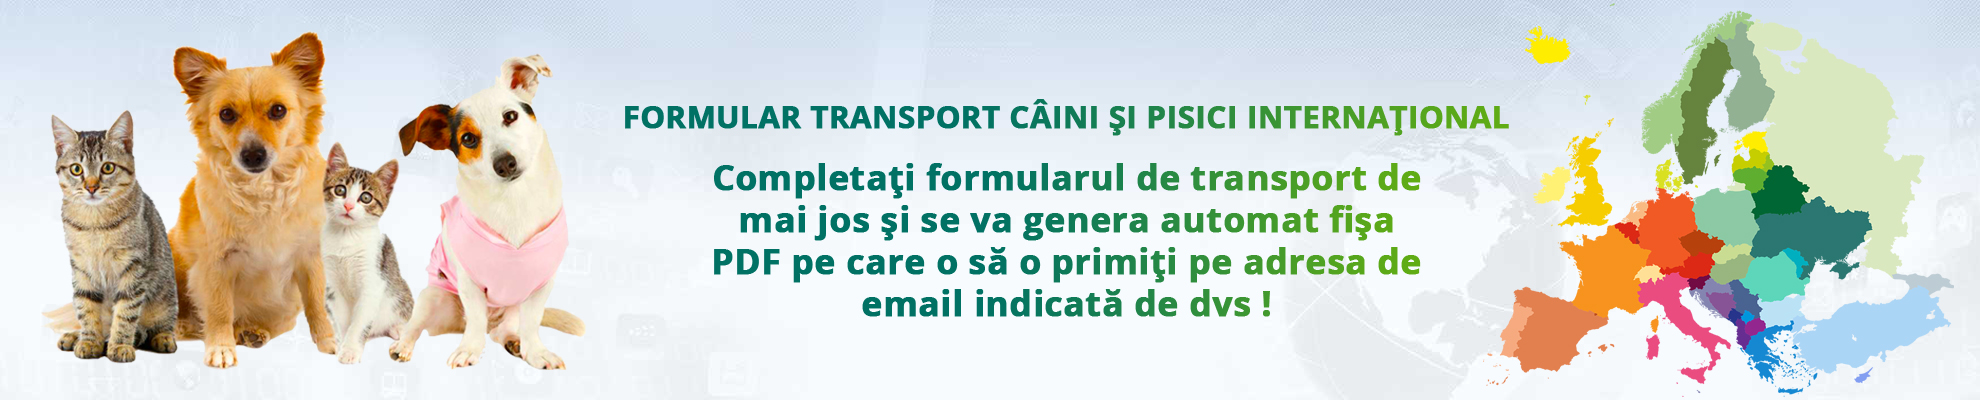 Formular transport caini si pisici international